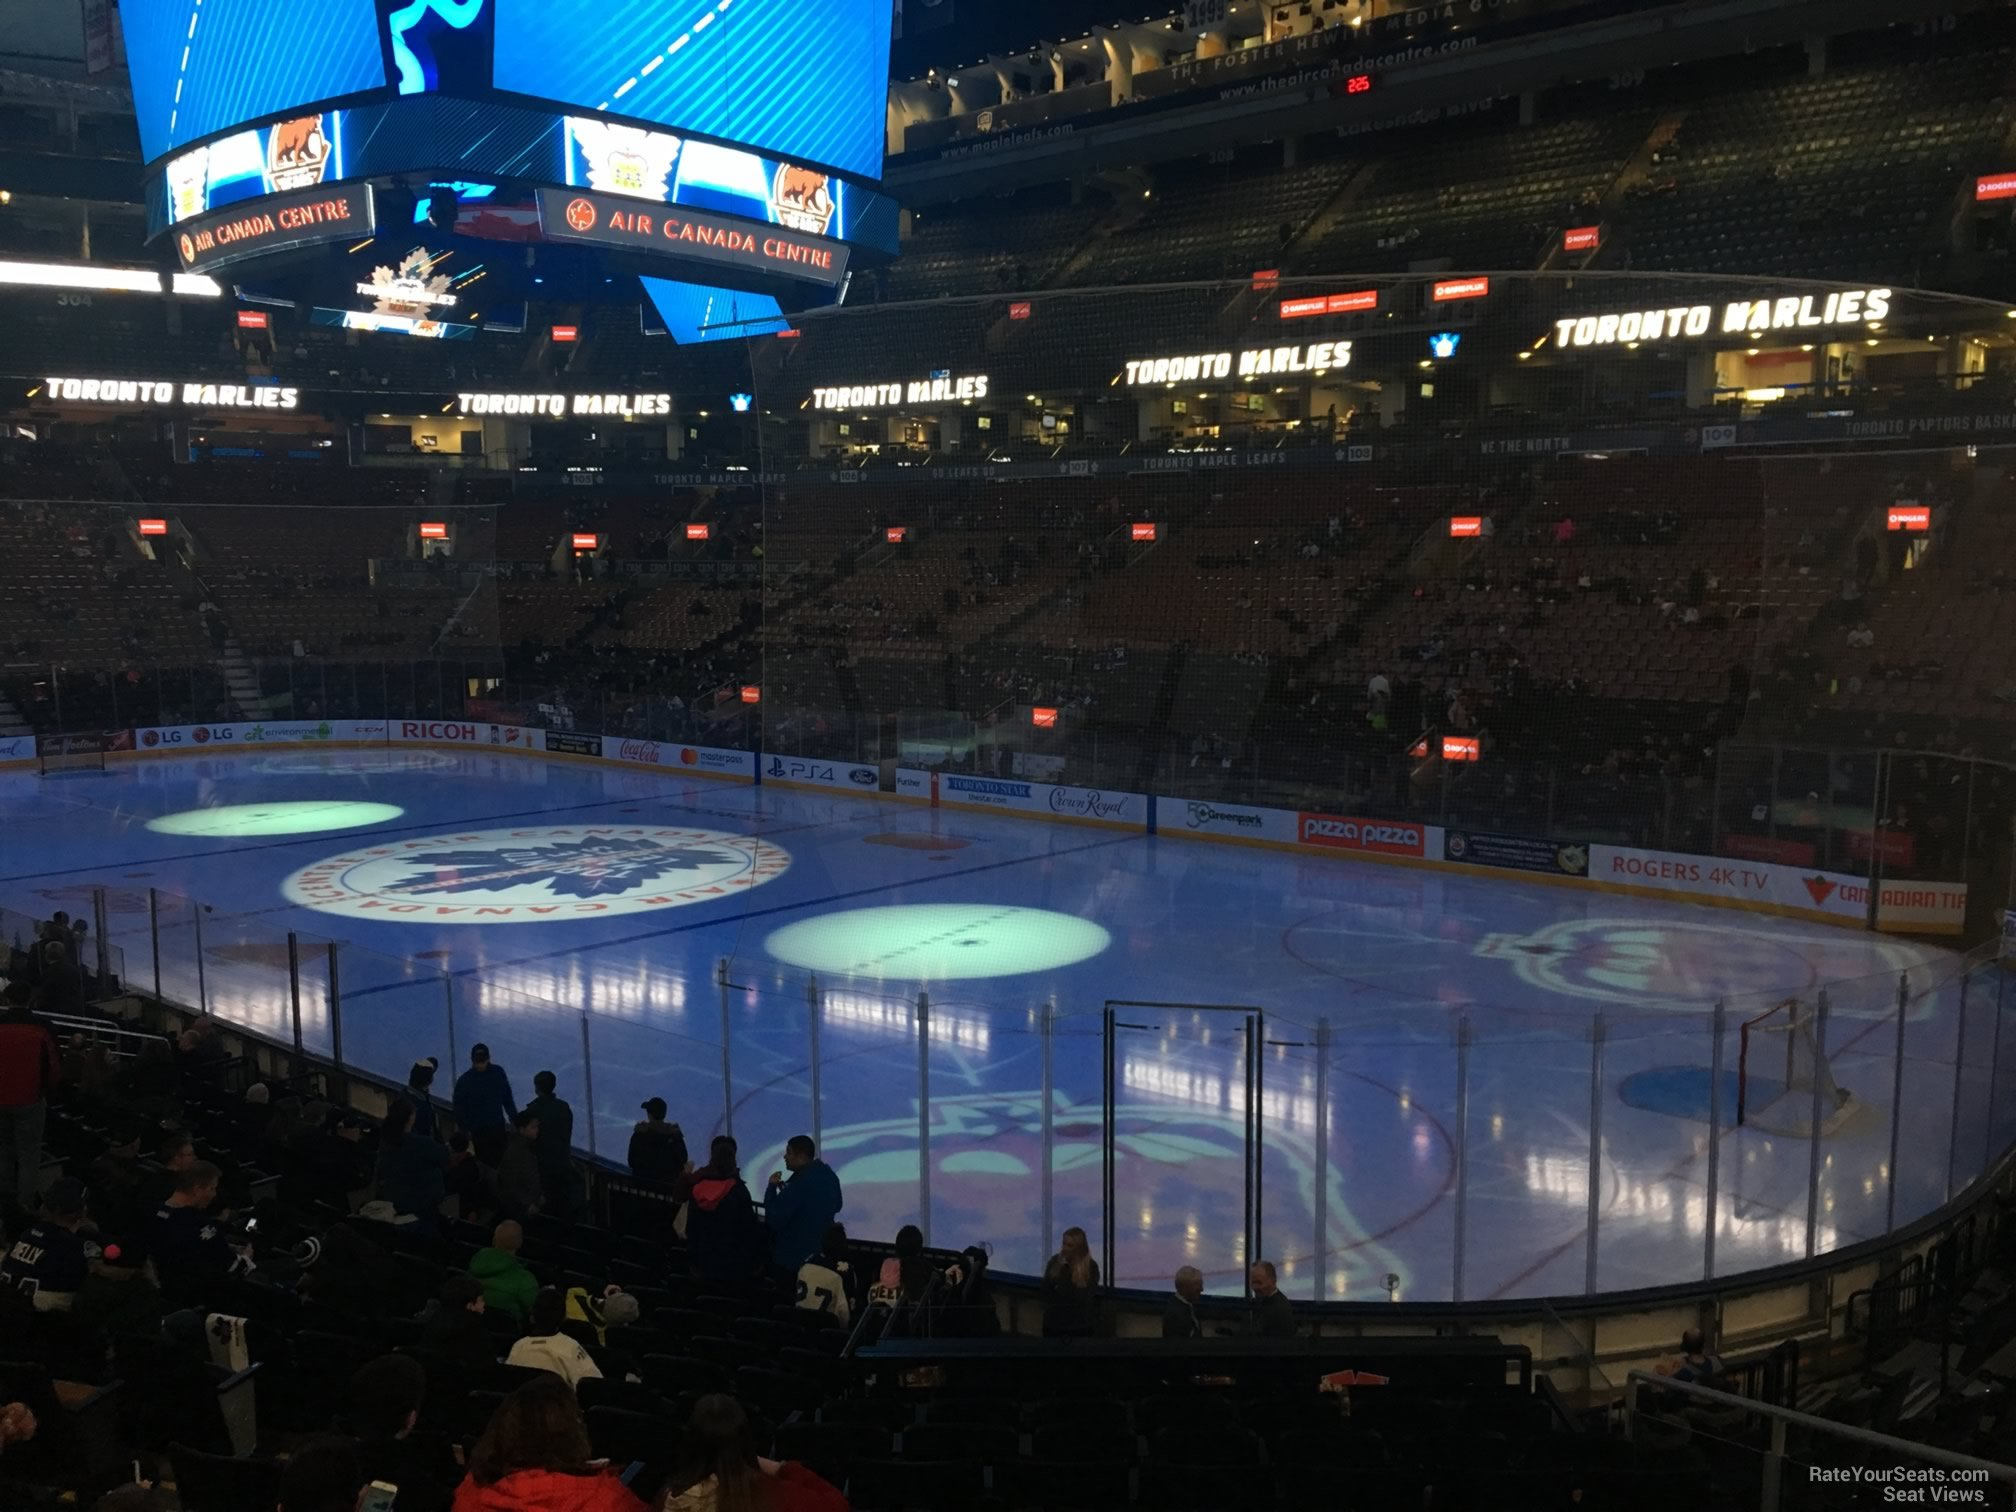 Toronto Maple Leafs Seat View for Scotiabank Arena Section 116, Row 20